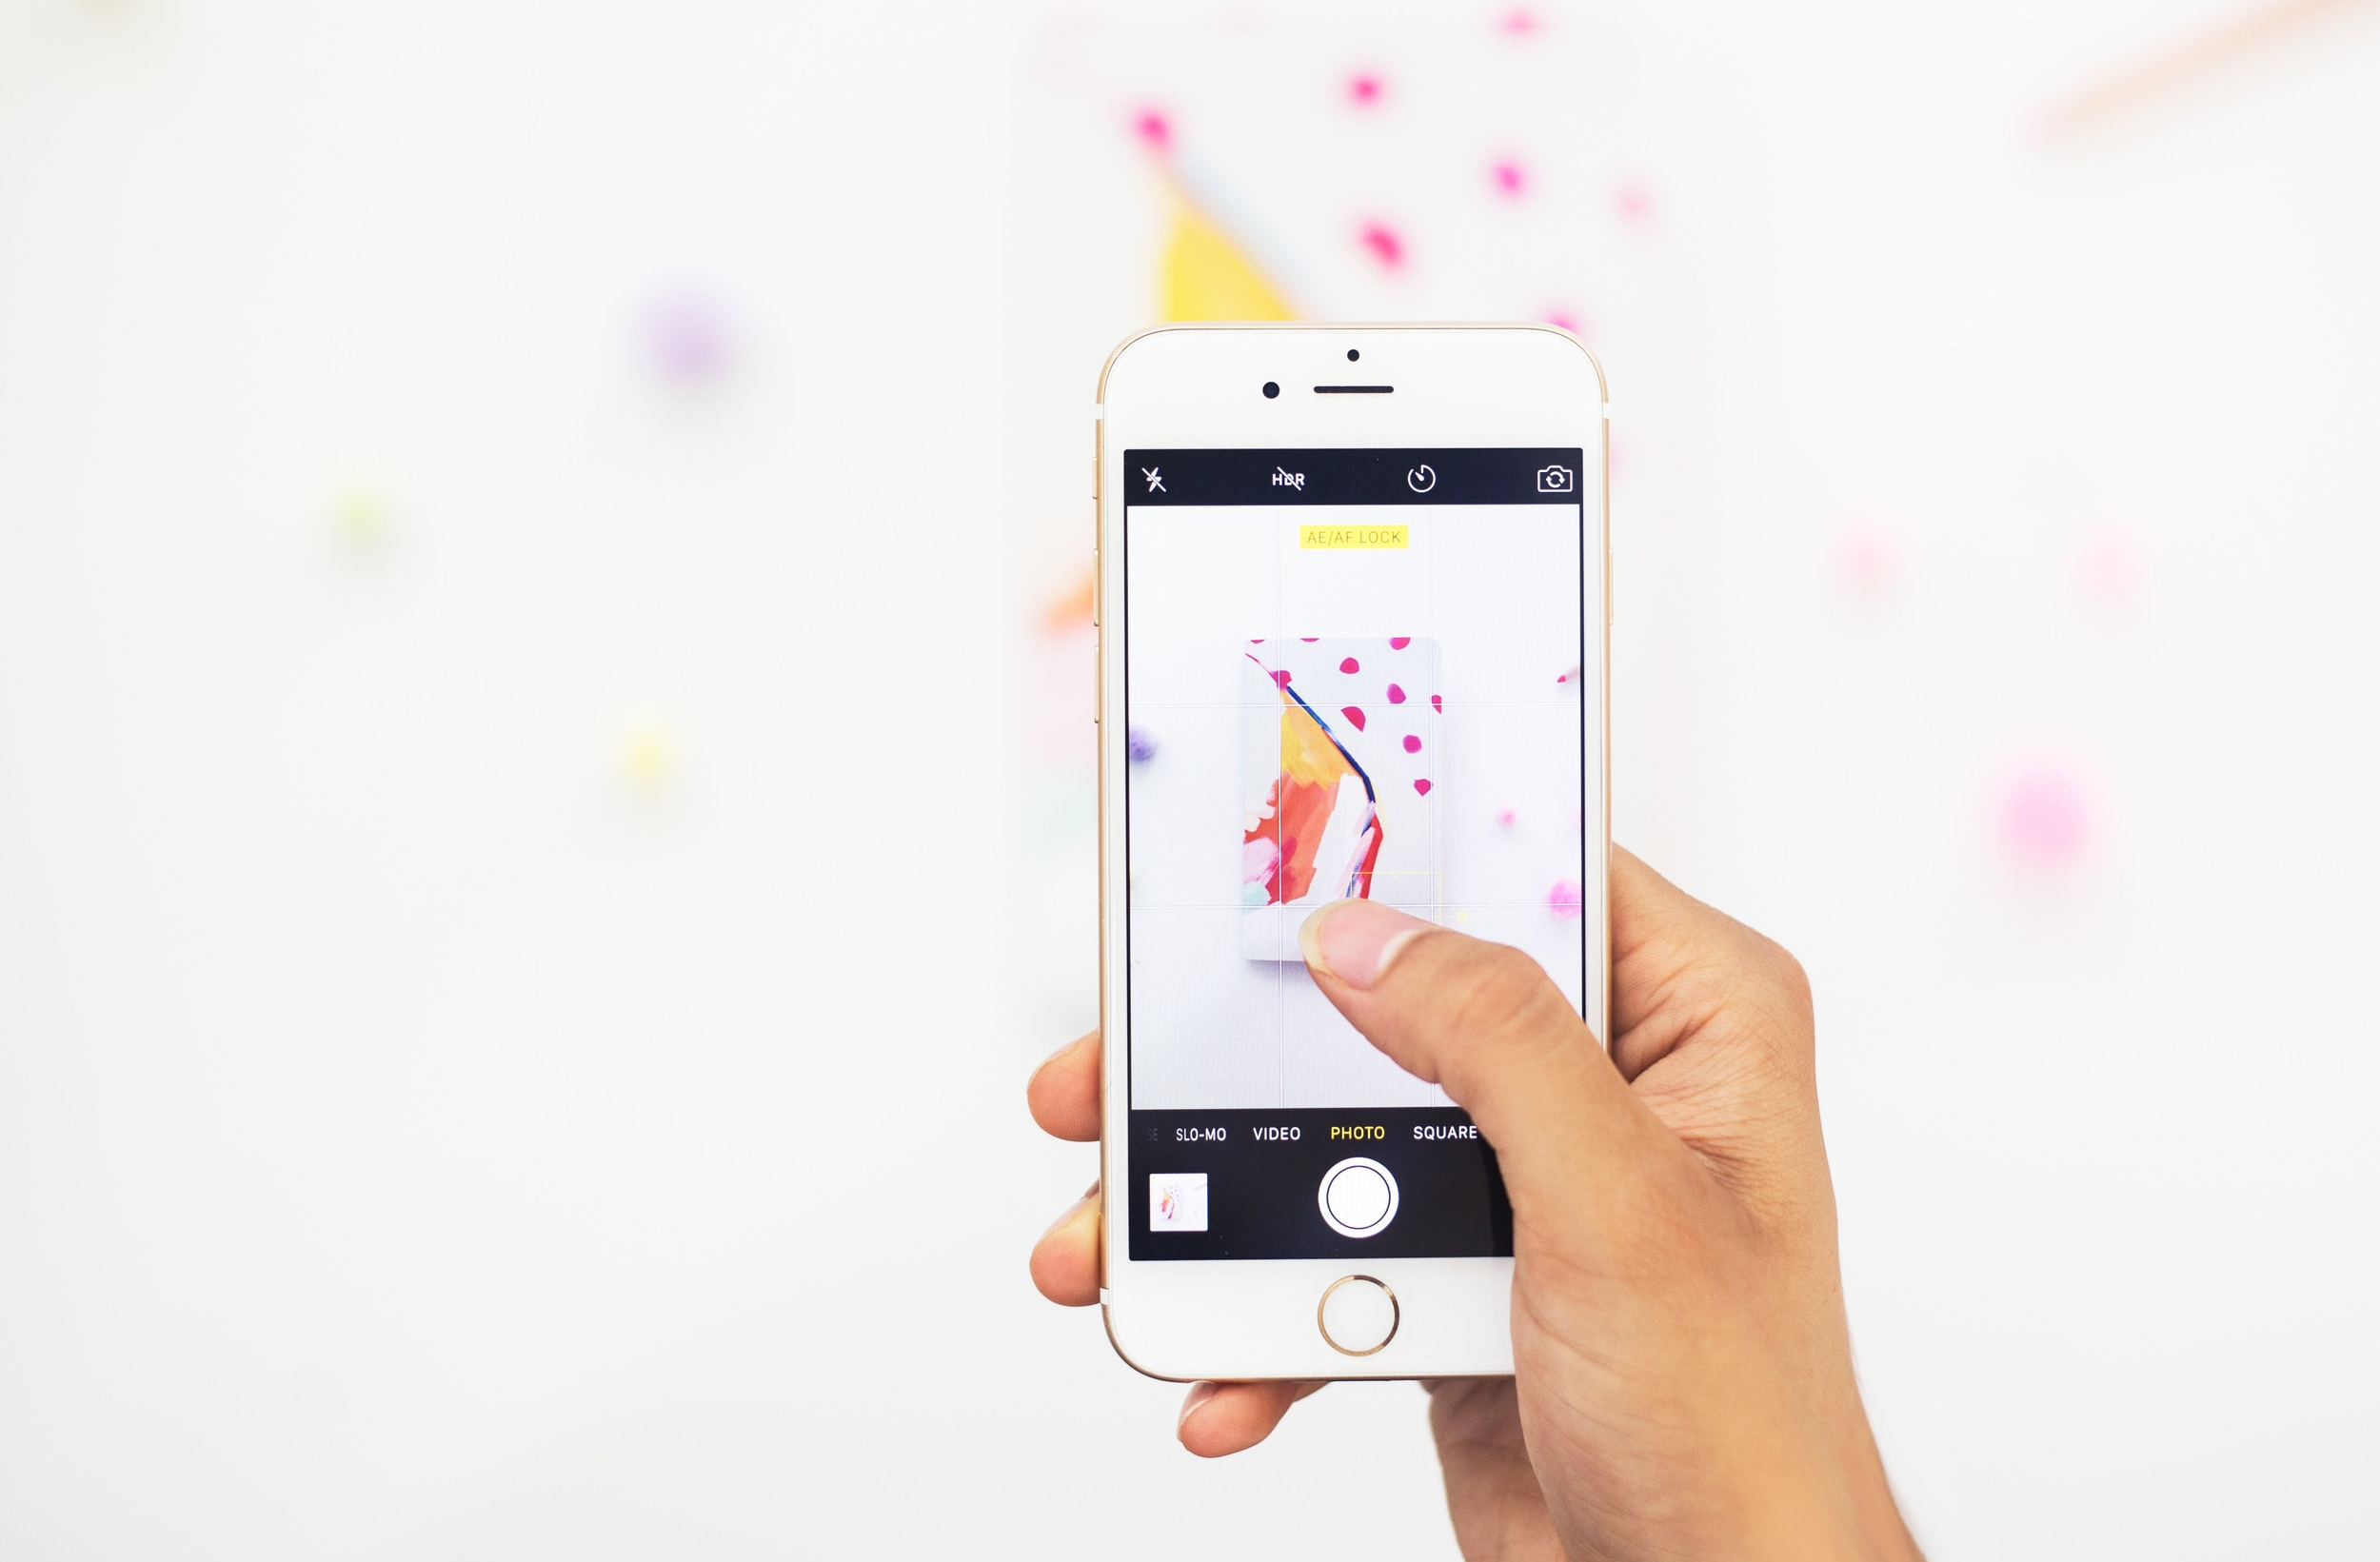 Free INSTAGRAM course - Take high-quality Instagram photos using your iPhone with my free 7-day email course